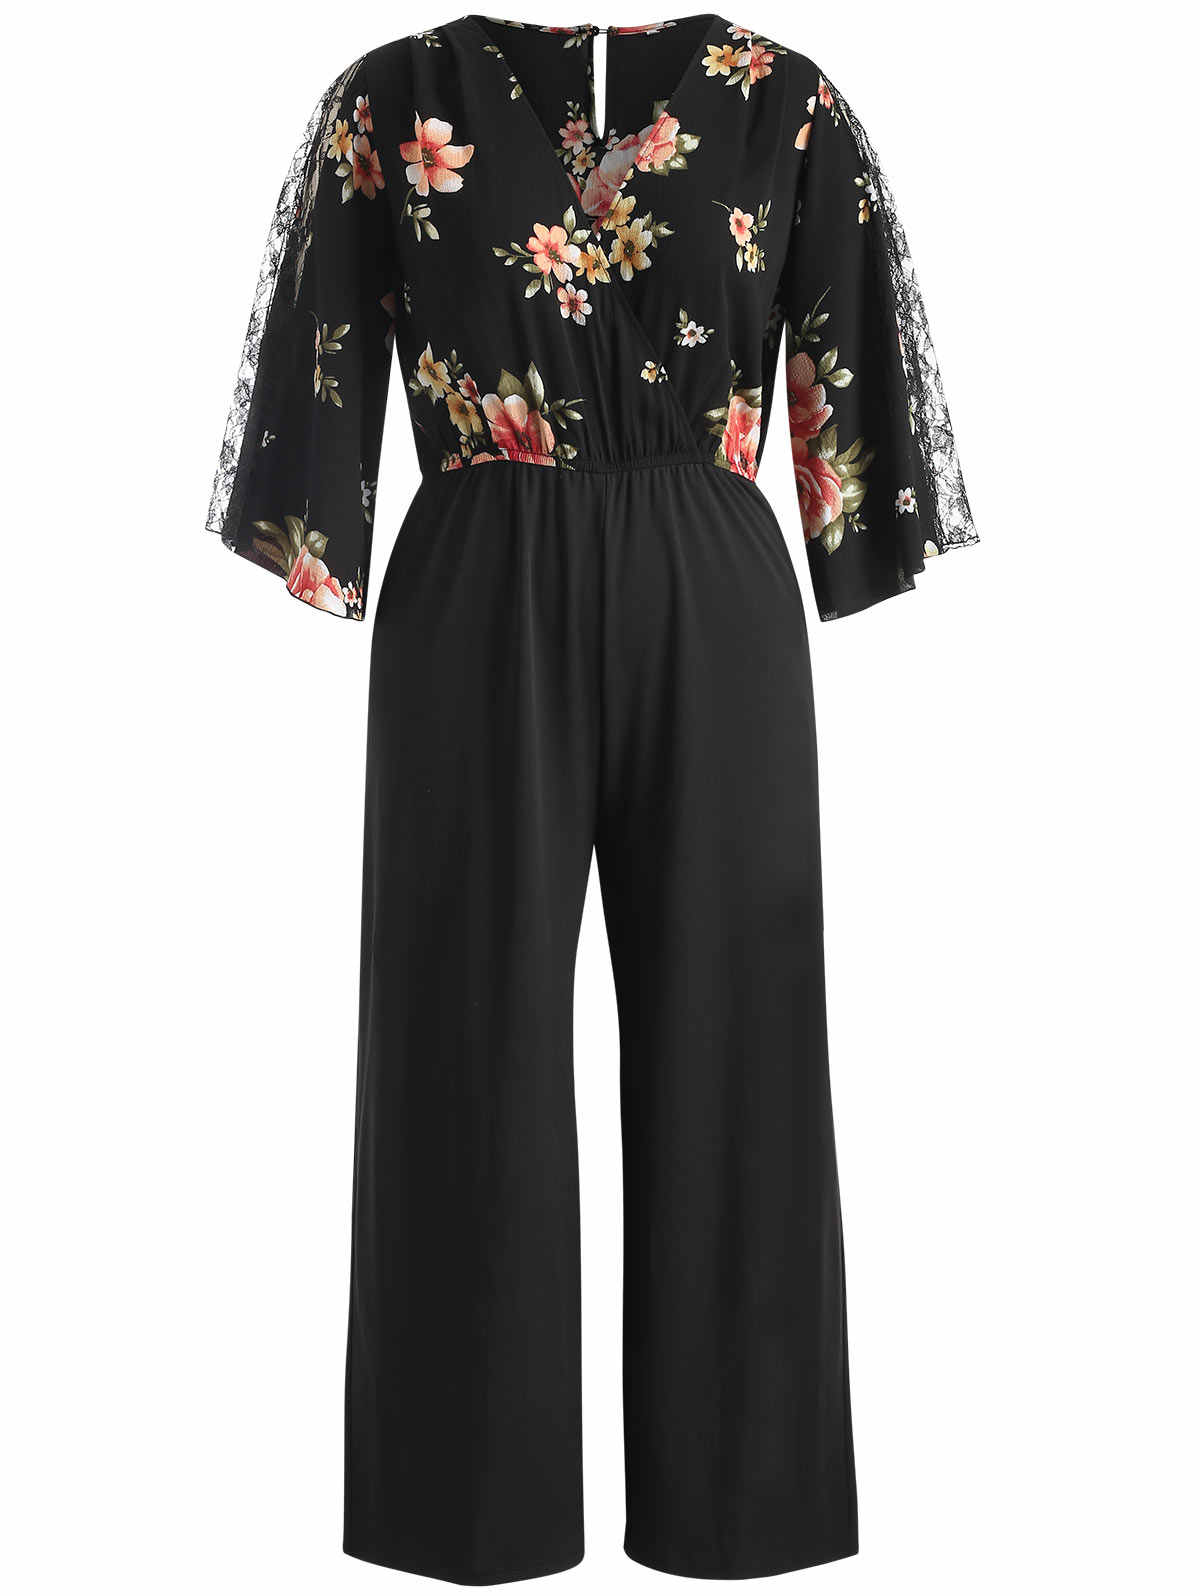 72ce0e1fe7 Wipalo Autumn Floral Print Jumpsuit Women Casual Black Wide Leg Rompers  Plus Size Lace Patchwork Bell Sleeve Jumpsuits Overalls